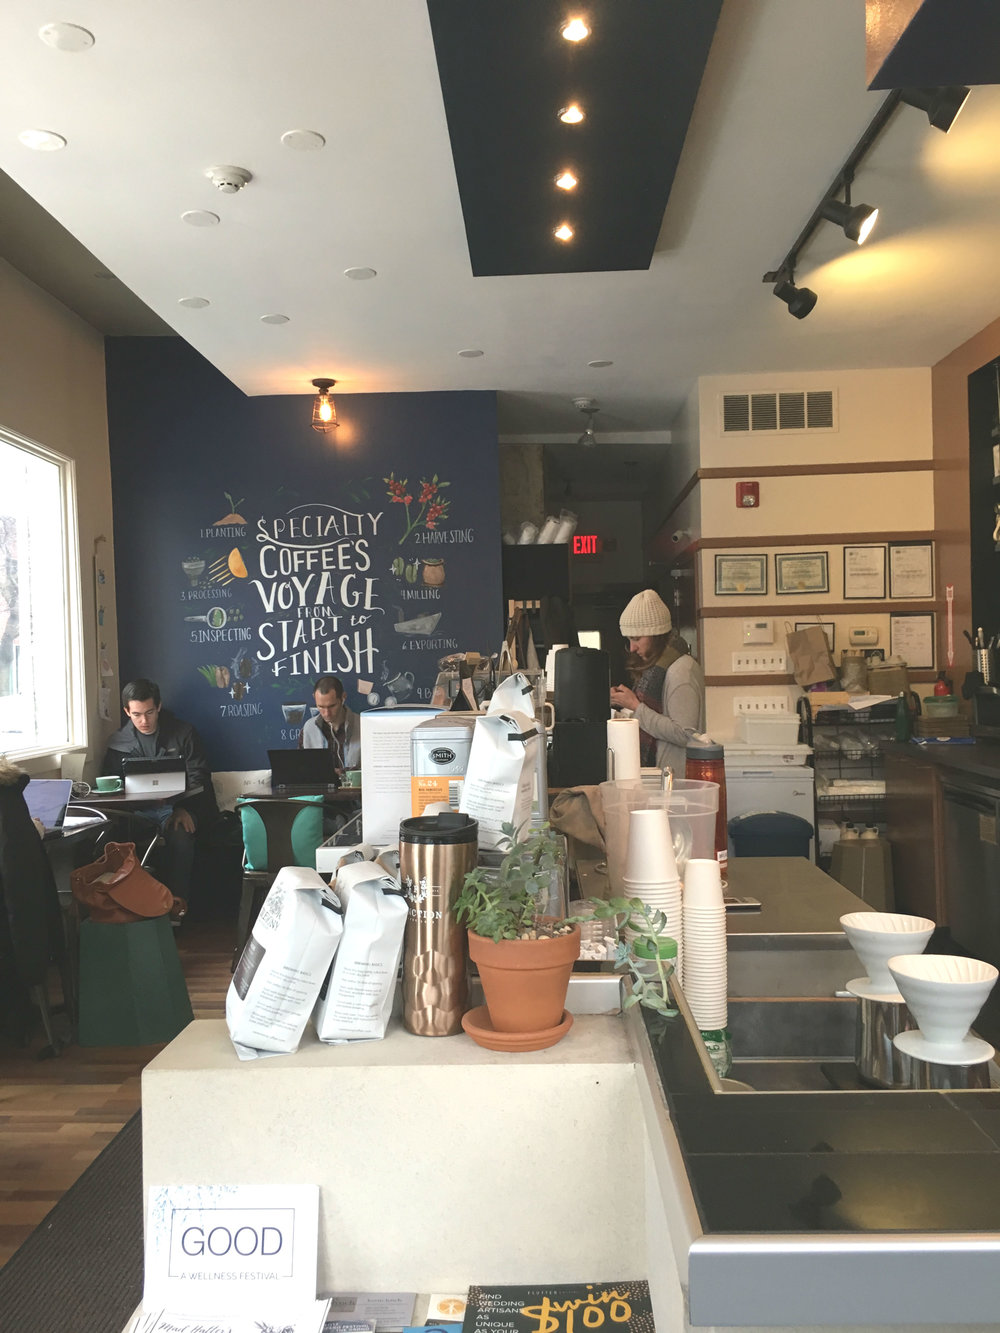 But First Coffee: Function Coffee Labs in Philadelphia